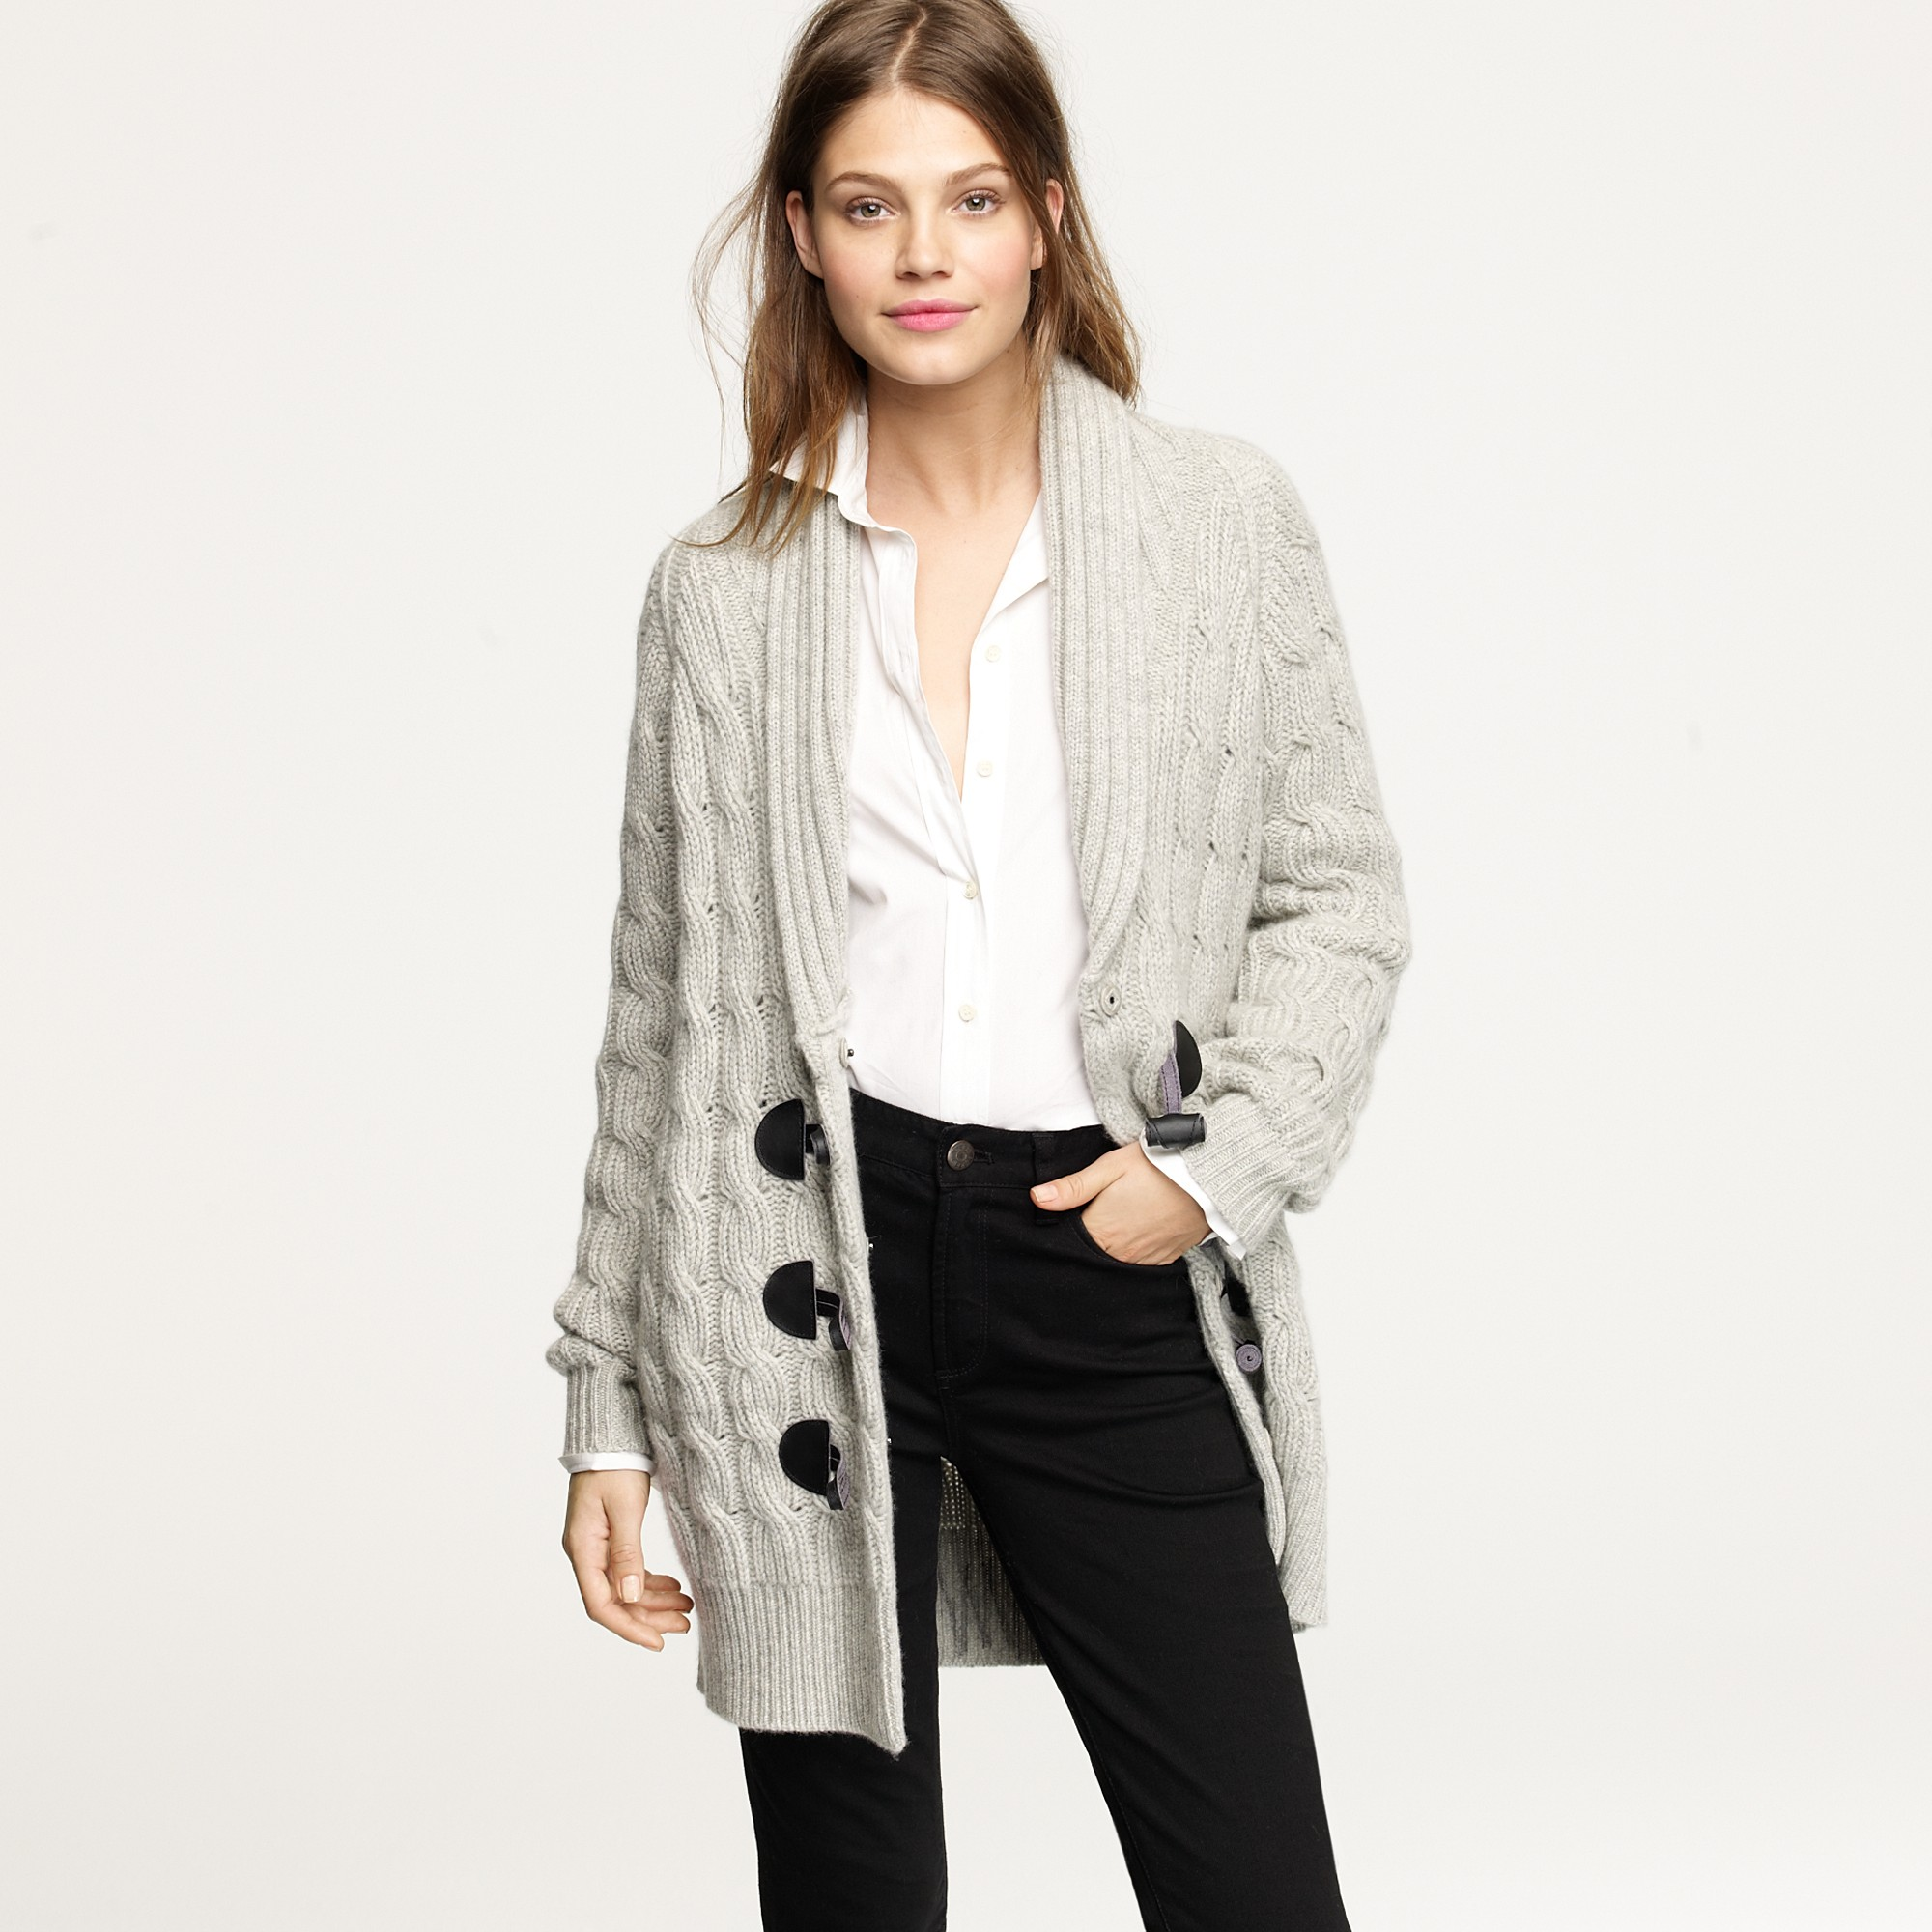 J.crew Cashmere Cable Boyfriend Cardigan in Gray | Lyst